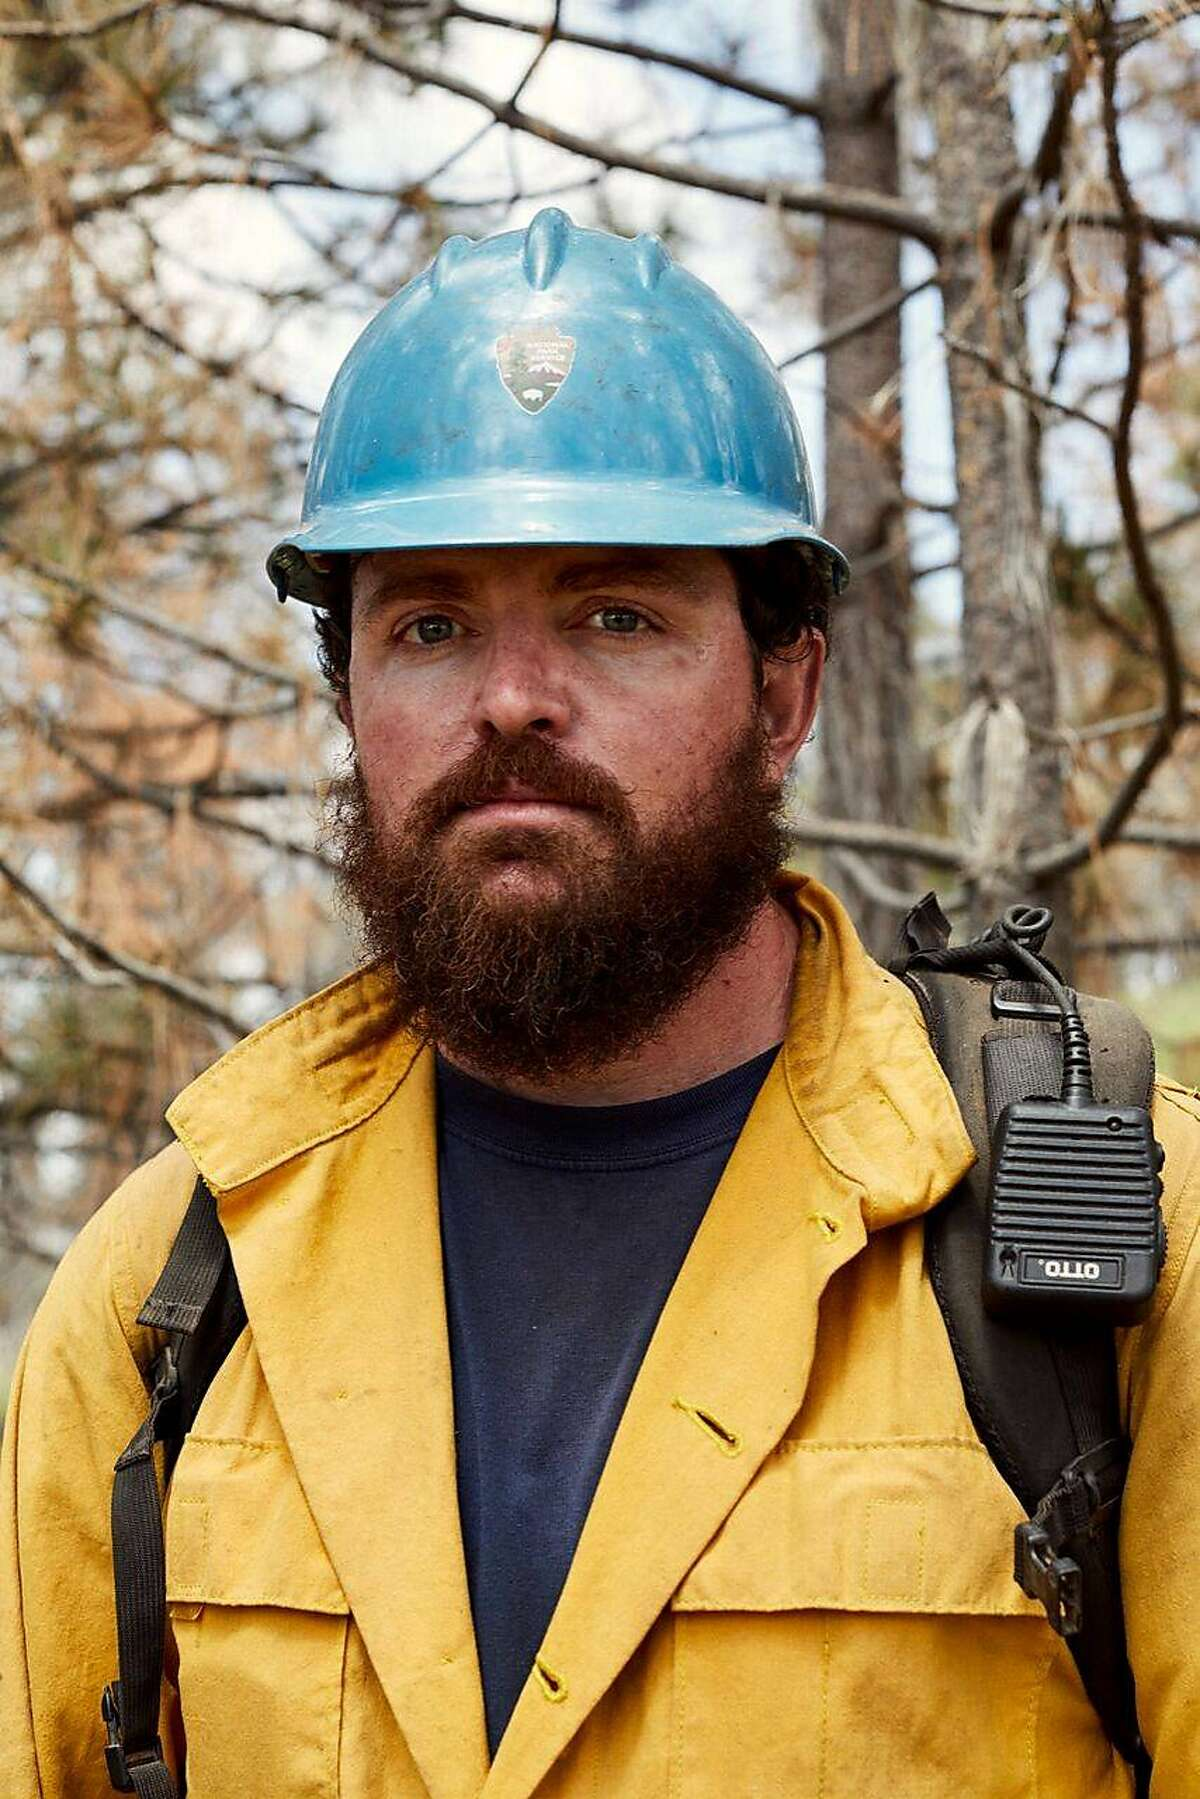 Captain Brian Hughes, a 33-year-old firefighter from Sequoia and Kings Canyon national parks, died after being hit by a falling tree on Sunday, July 29, 2018 while fighting the Ferguson Fire in Mariposa County near Yosemite.